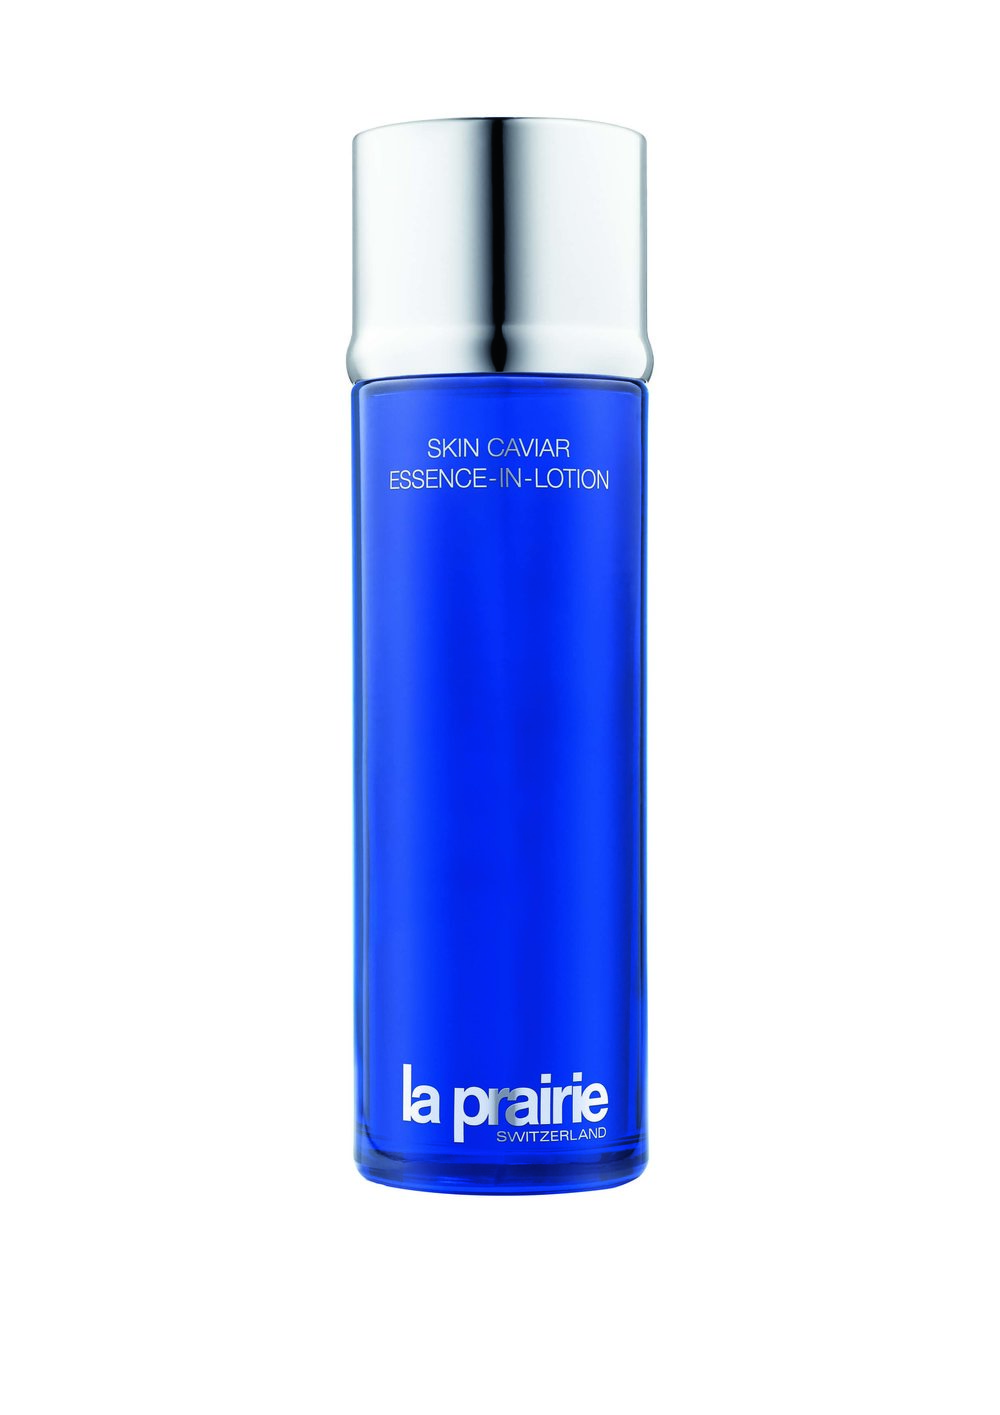 La Prairie Skin Caviar Essence-in-Lotion 150ml $310